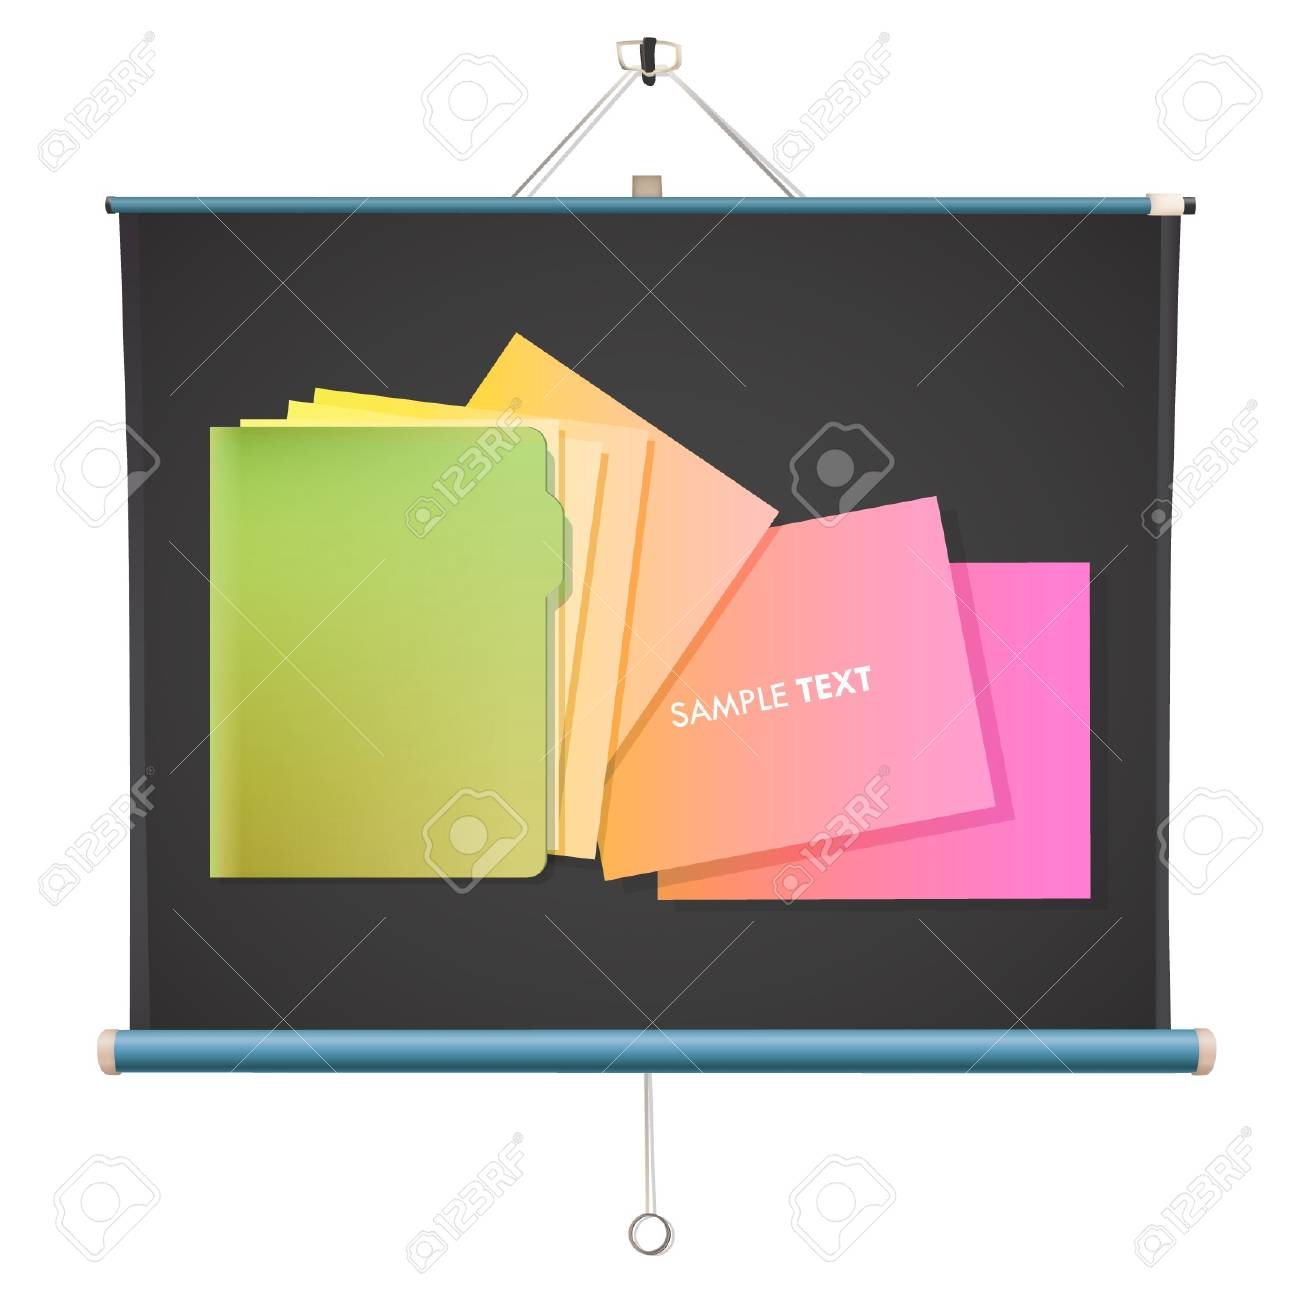 Colorful folder in a projector screen   design Stock Vector - 17344282